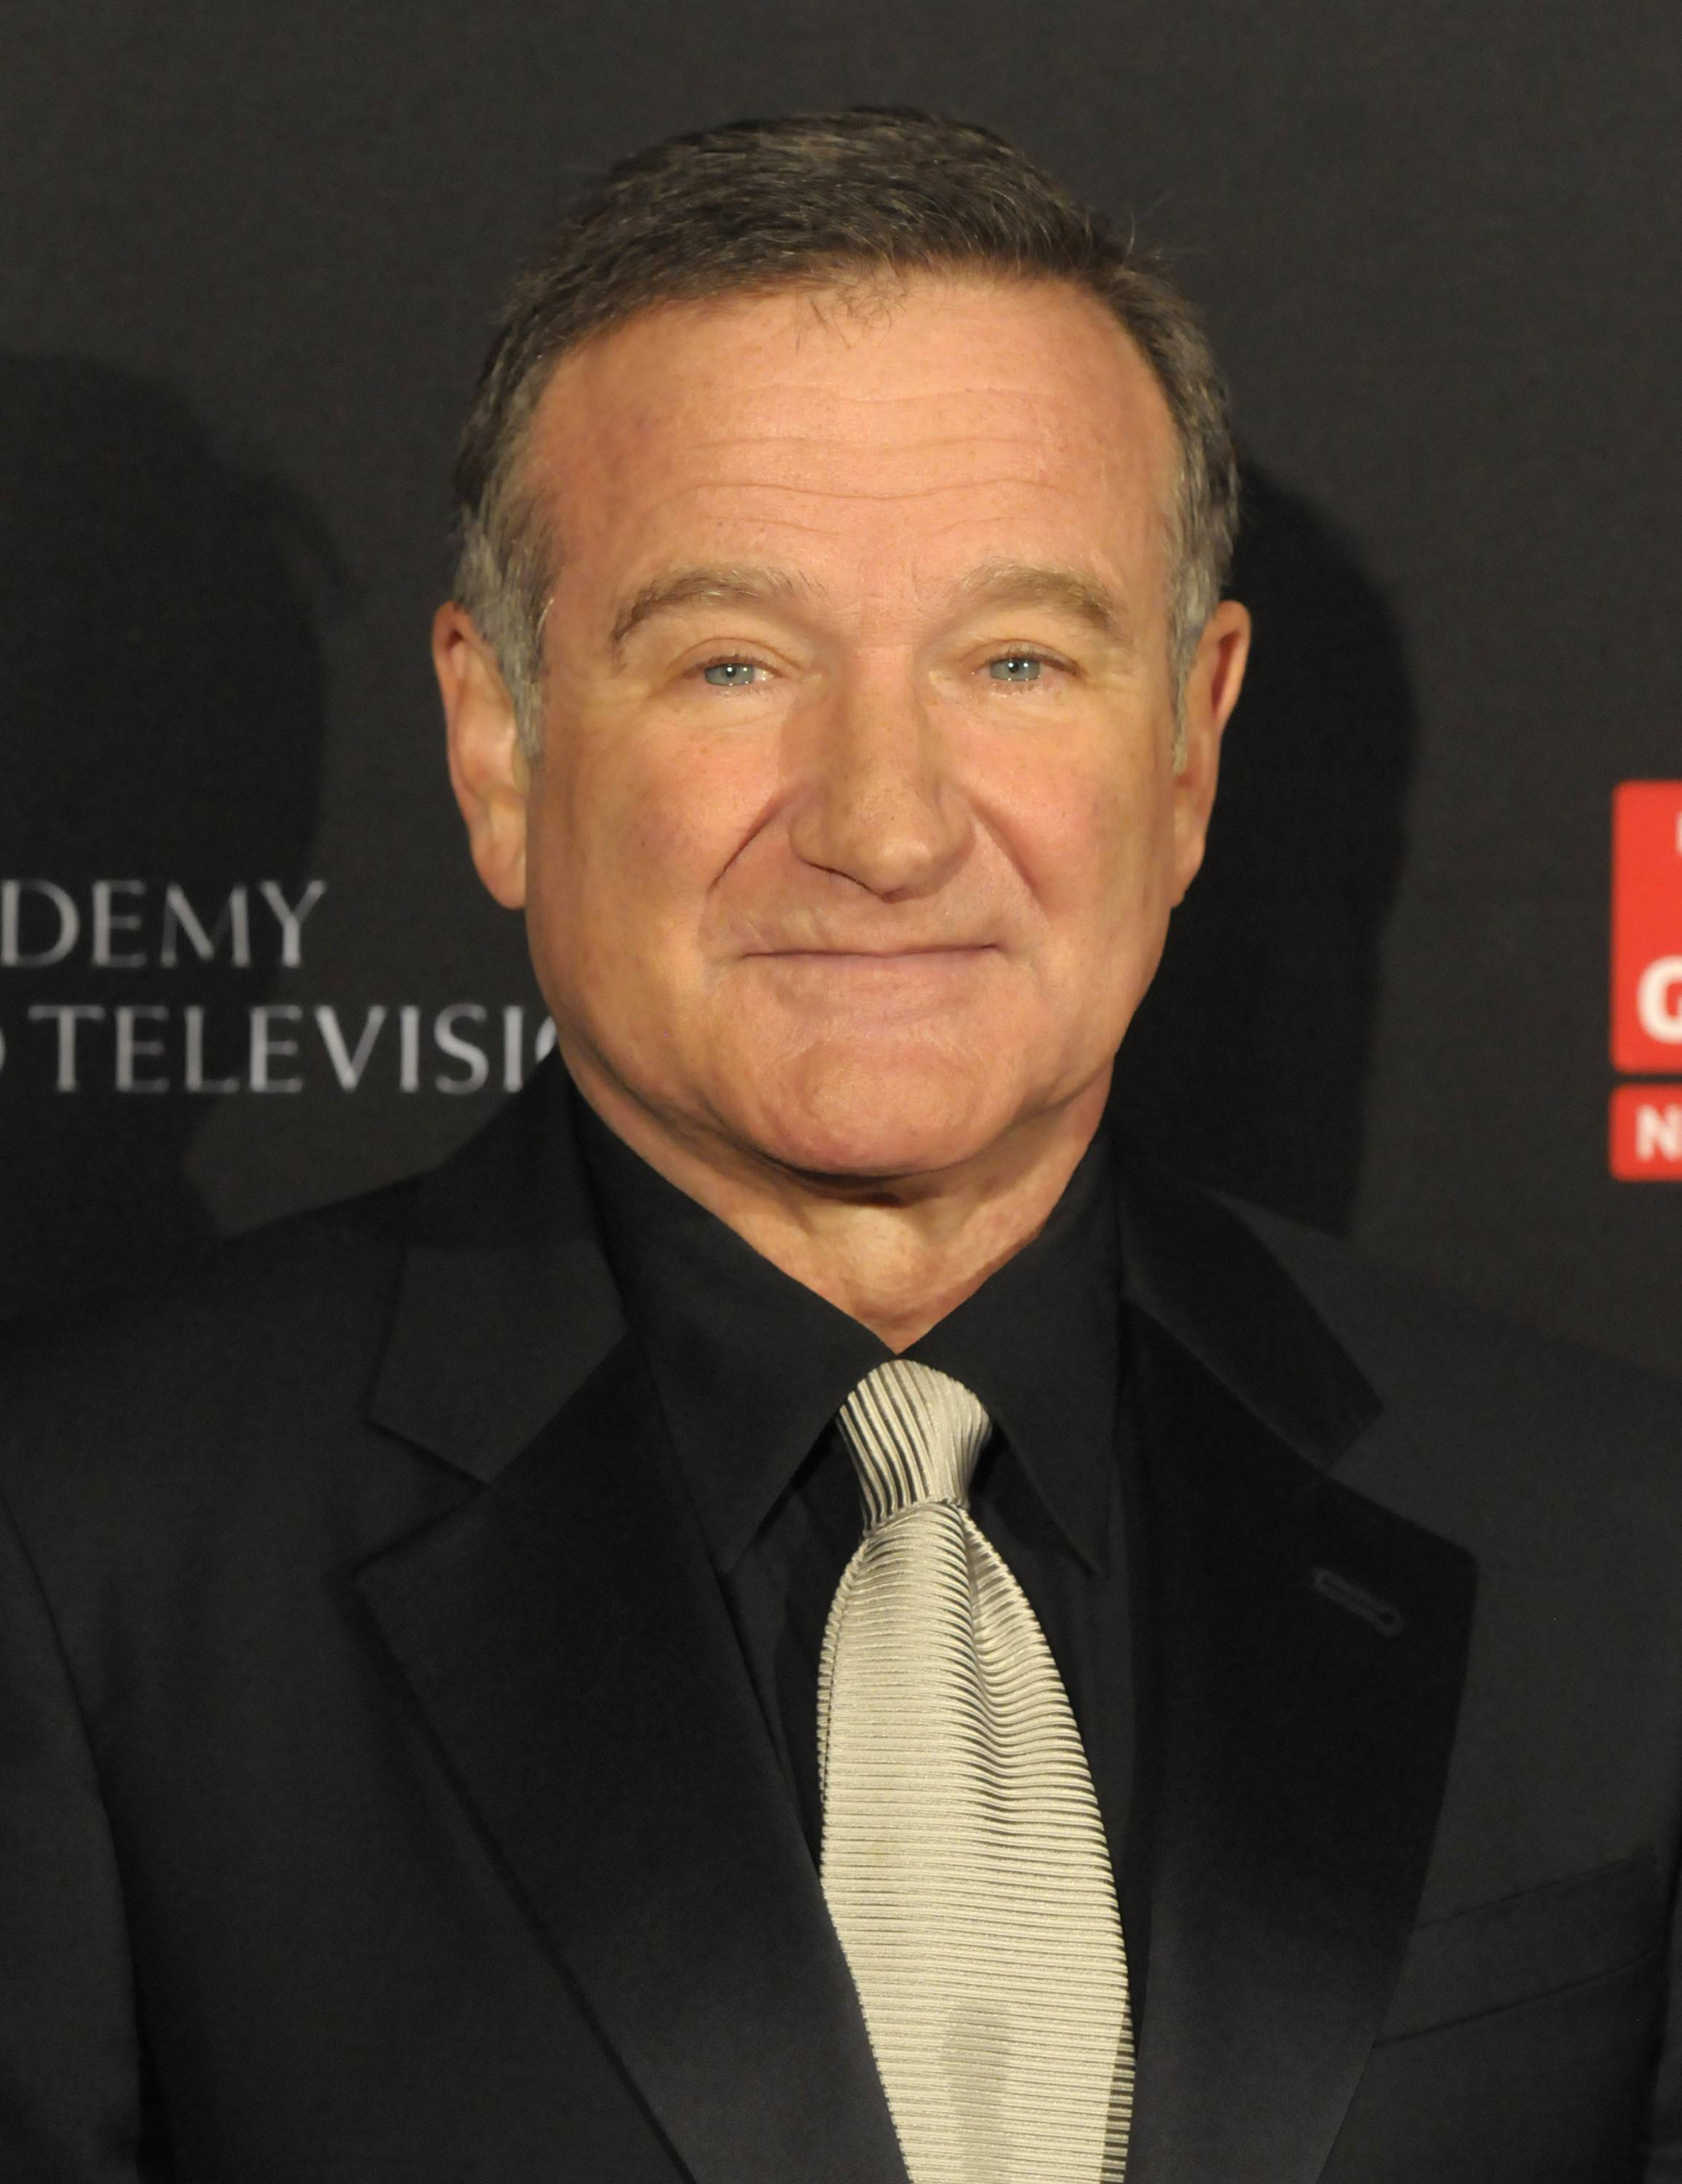 Famous fans, colleagues tweet Robin Williams farewell messages